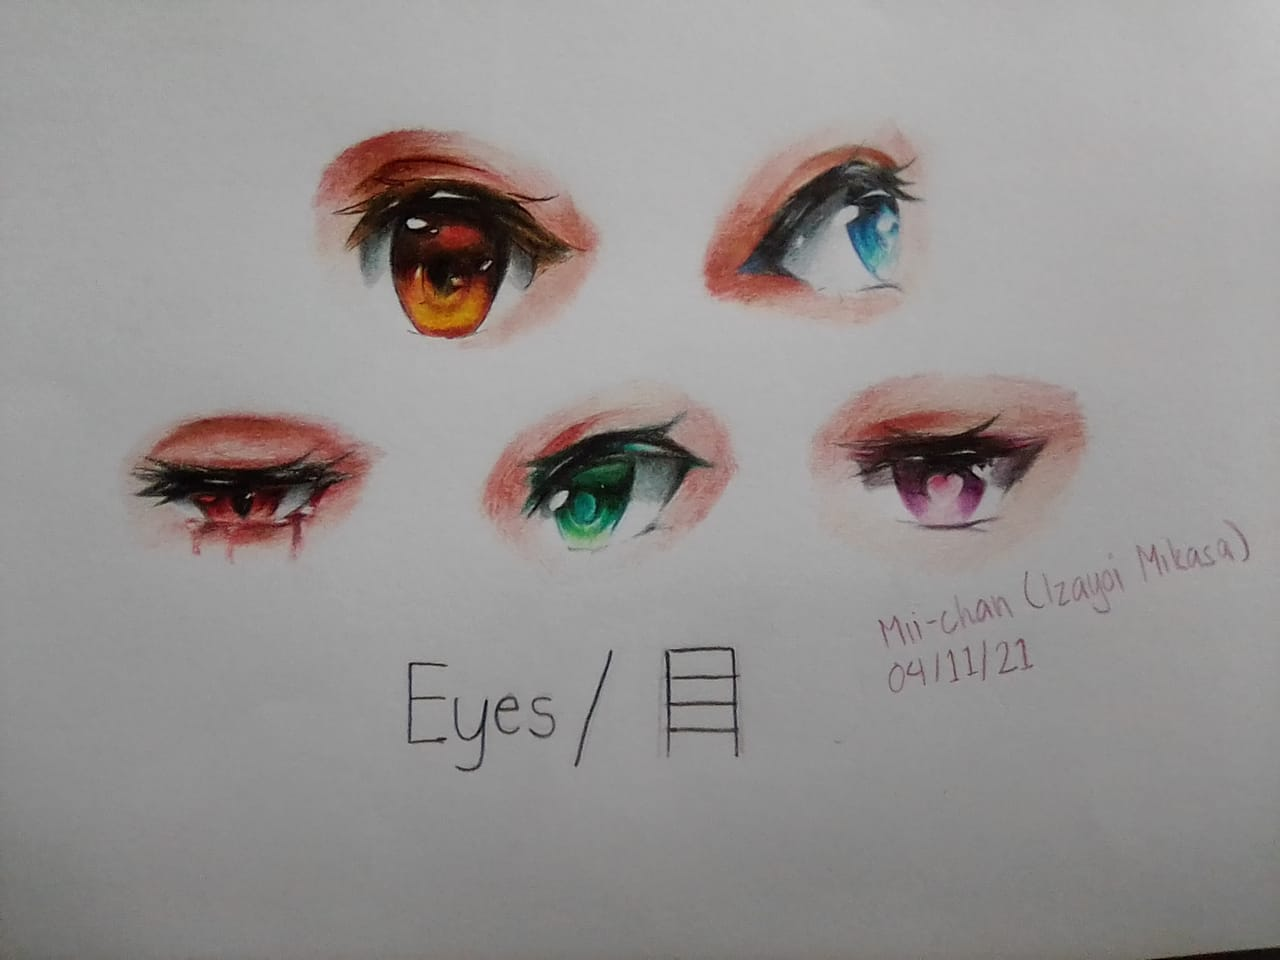 Anime Eyes  Illust of Izayoi Mikasa eyes color coloredpencil AnalogDrawing Mii-chan(Mikasa)